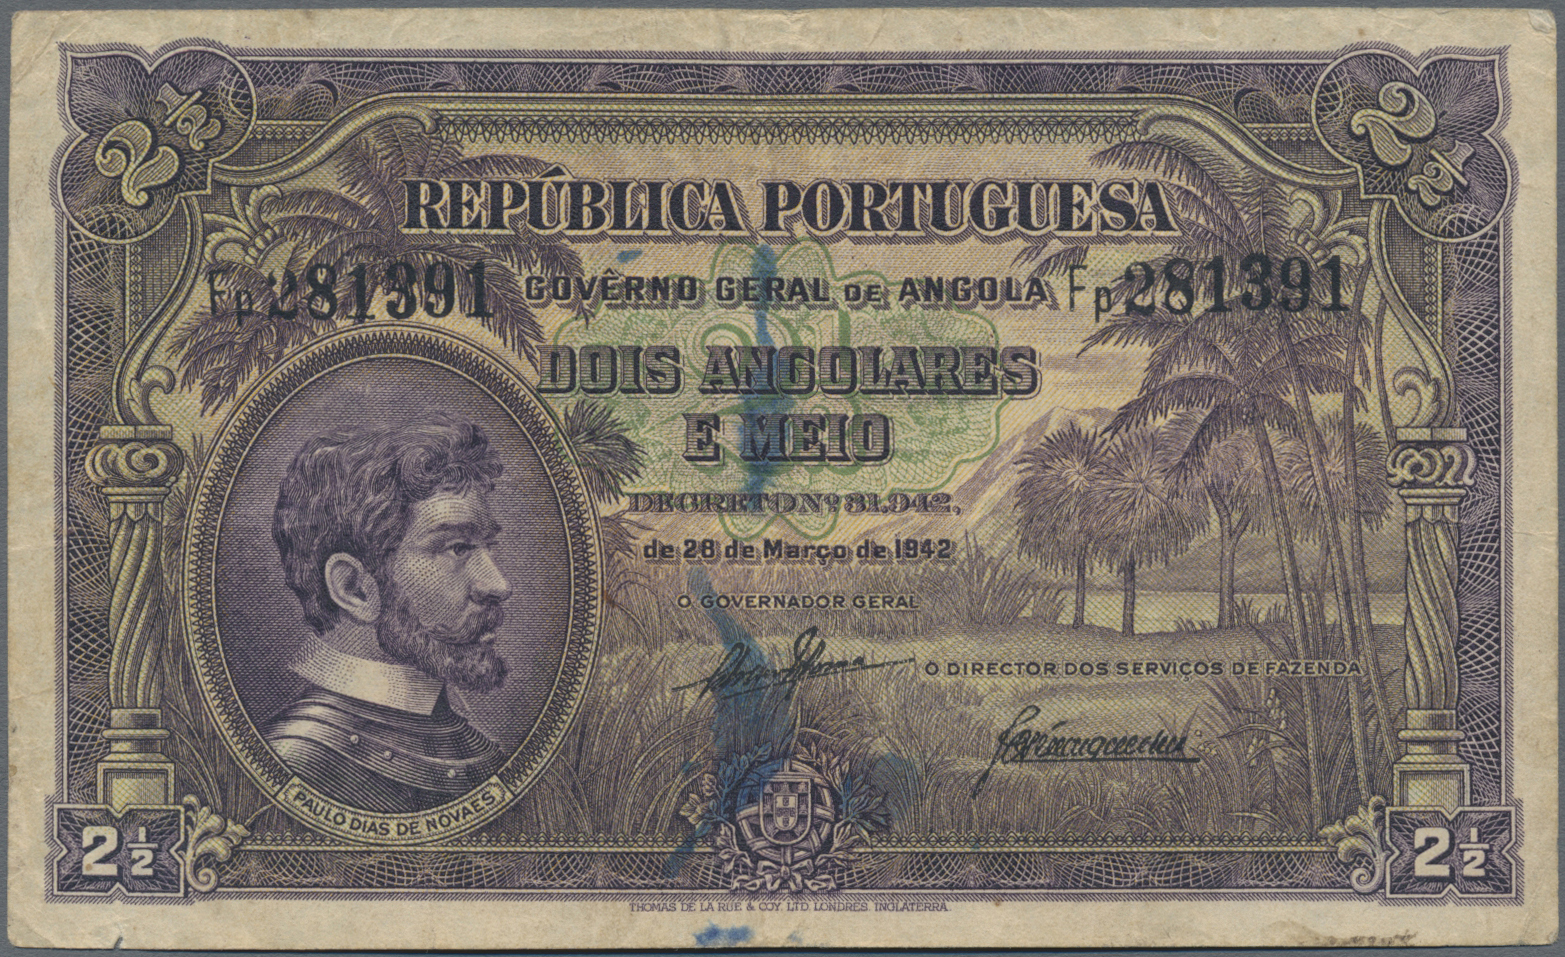 Lot 00014 - Angola | Banknoten  -  Auktionshaus Christoph Gärtner GmbH & Co. KG Sale #48 The Banknotes